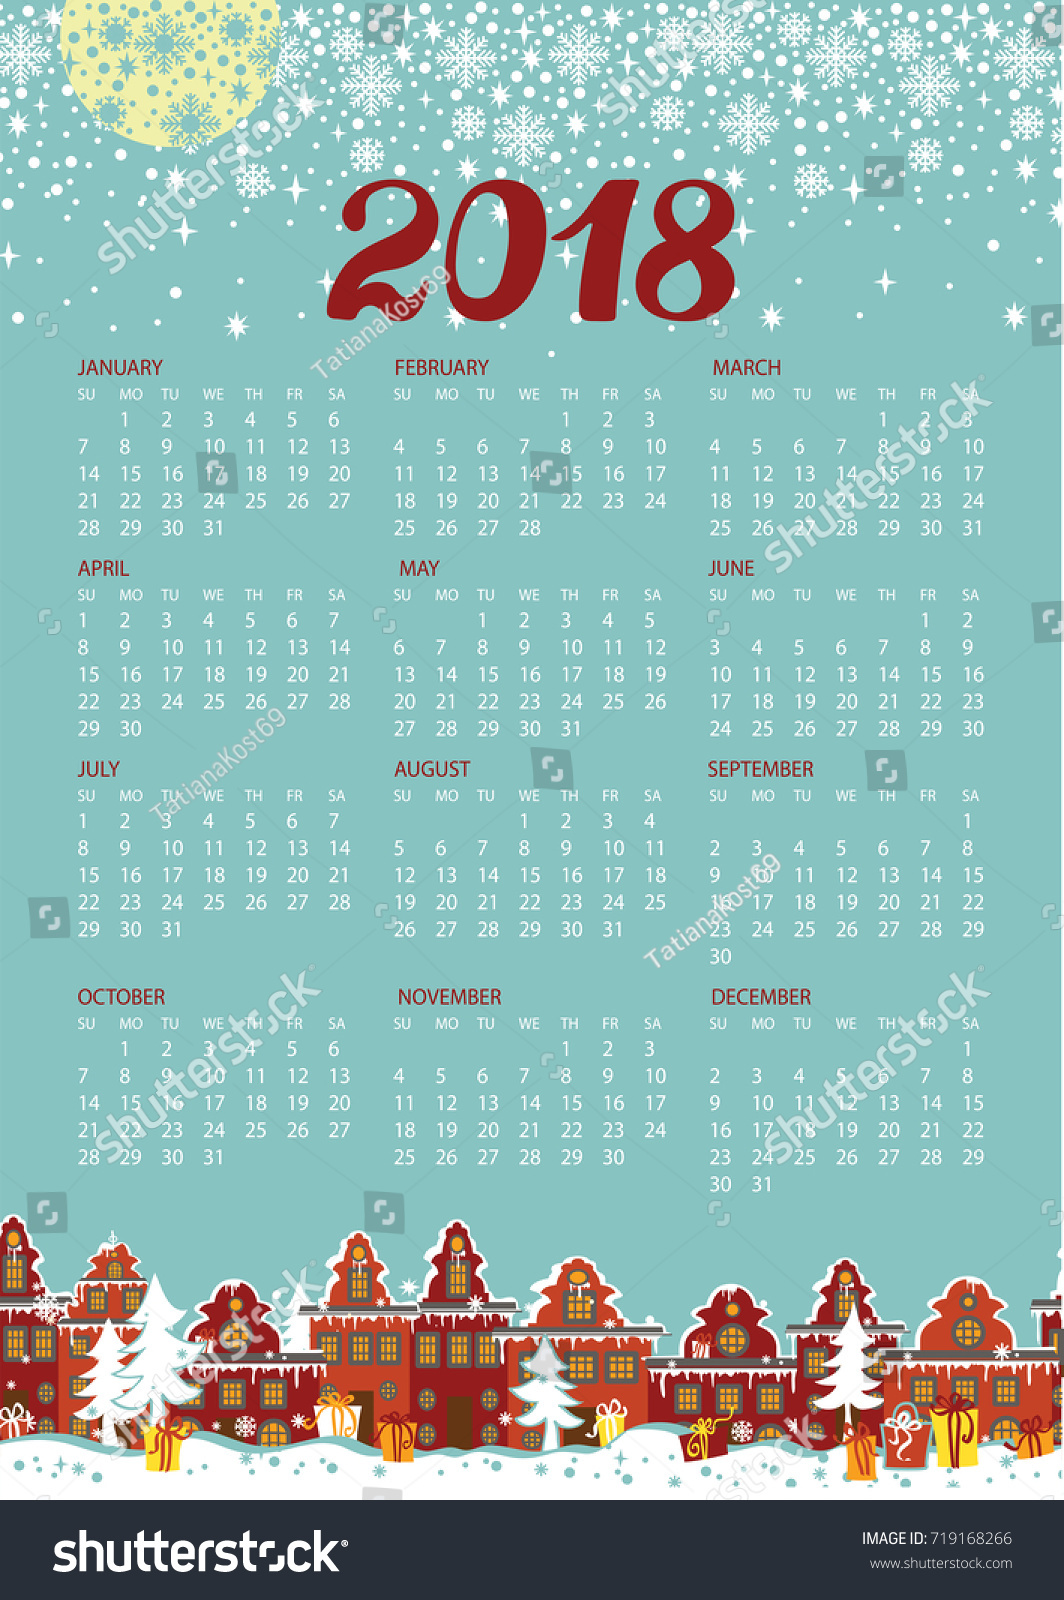 Happy New Year 2018 Celebration Calendar. Lttle Town In Winter Day.Houses  In The